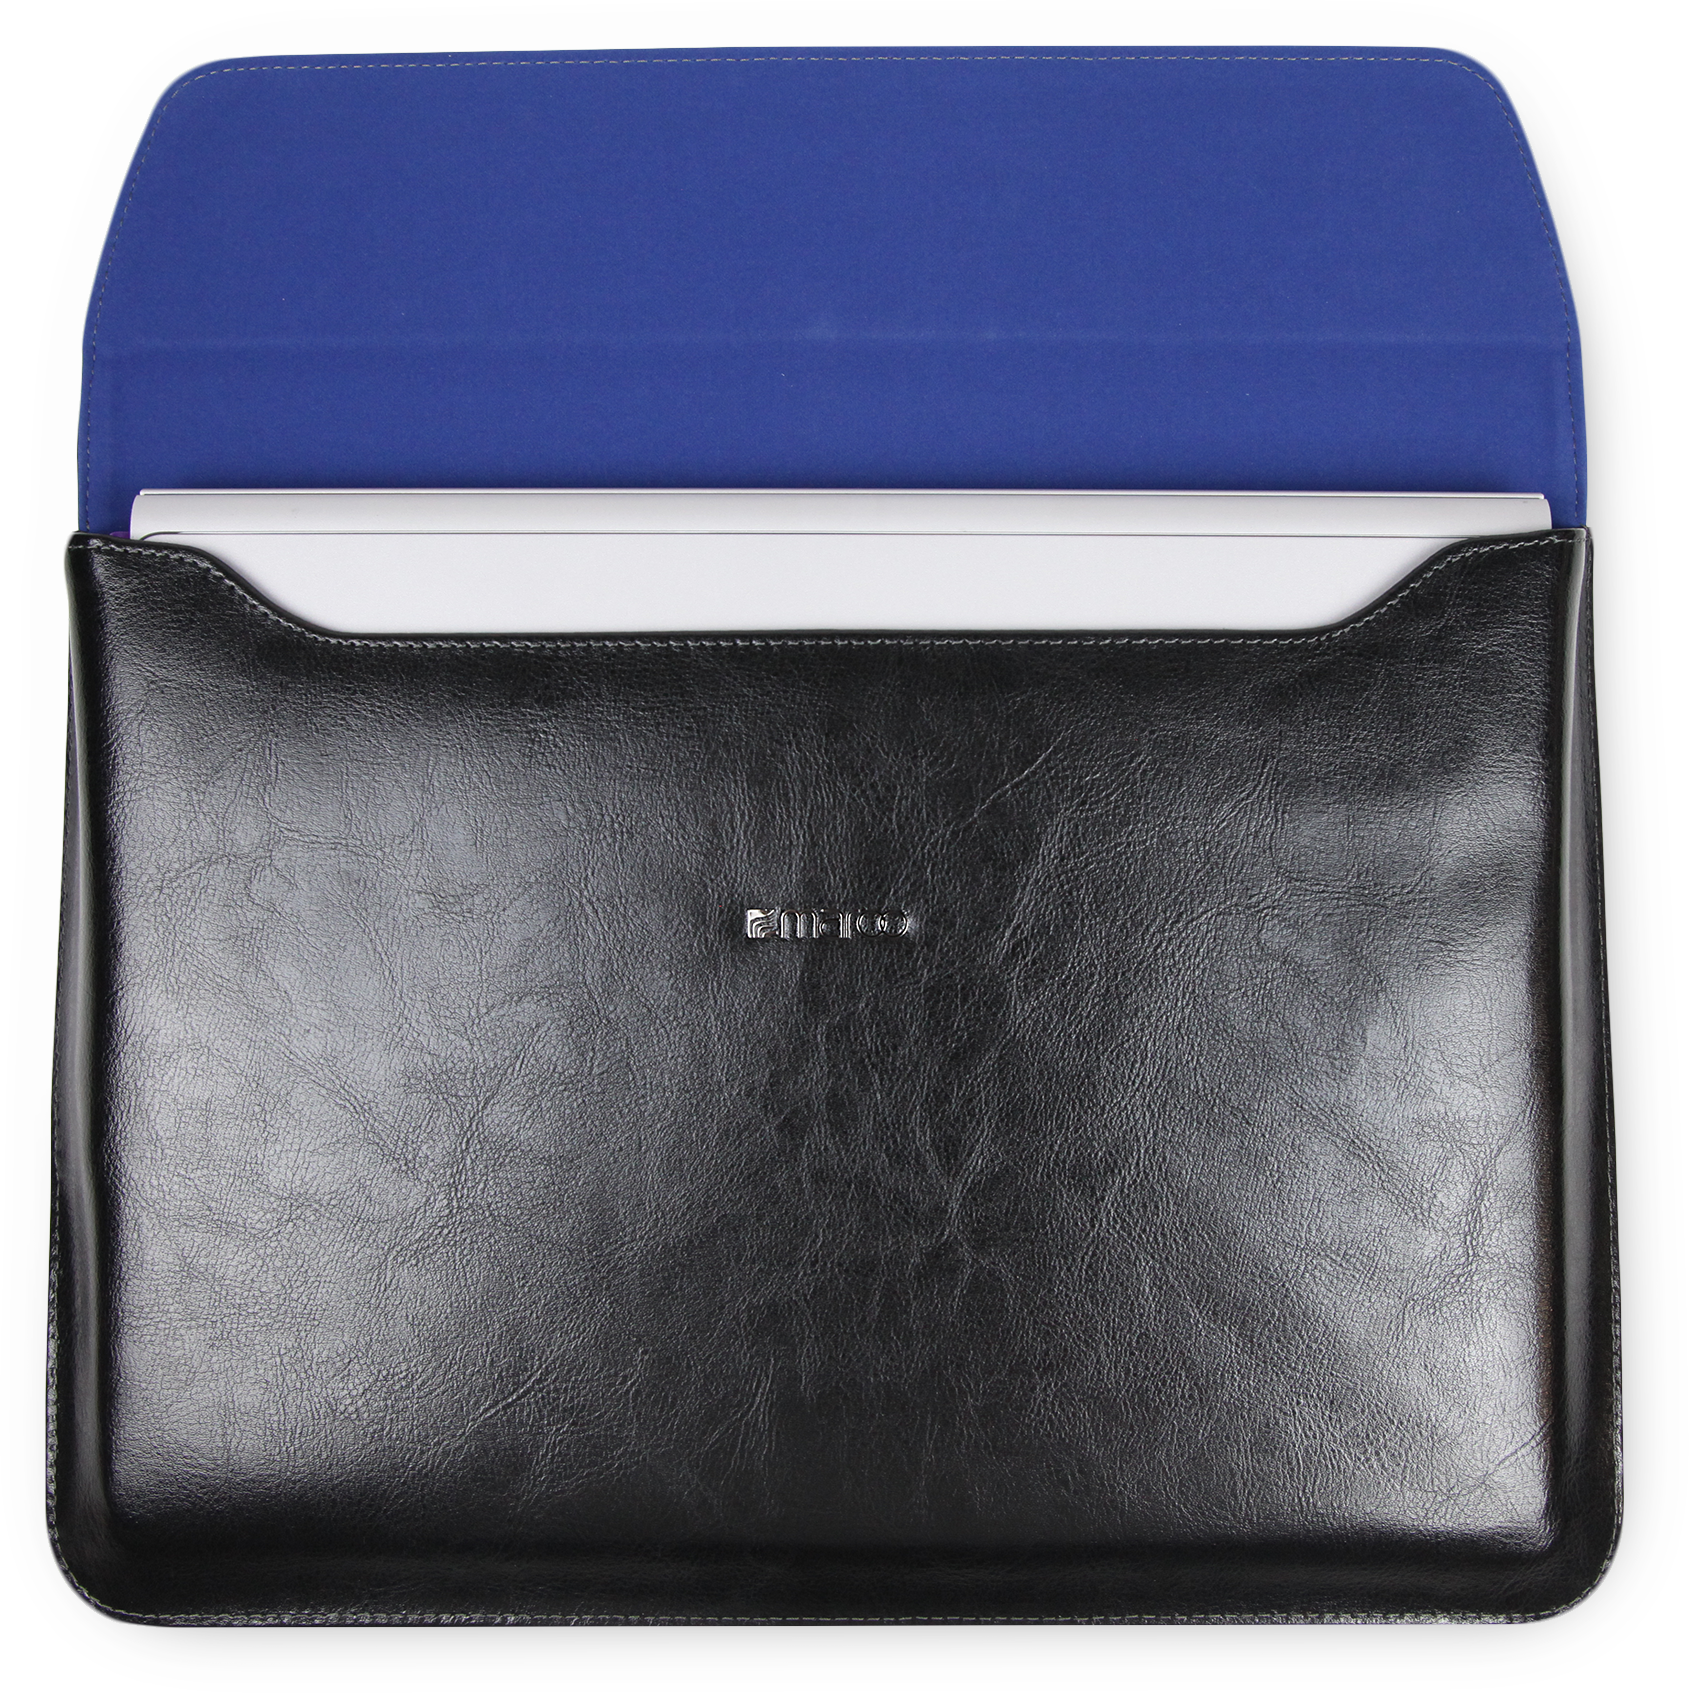 Maroo Black Leather Sleeve for Surface Book